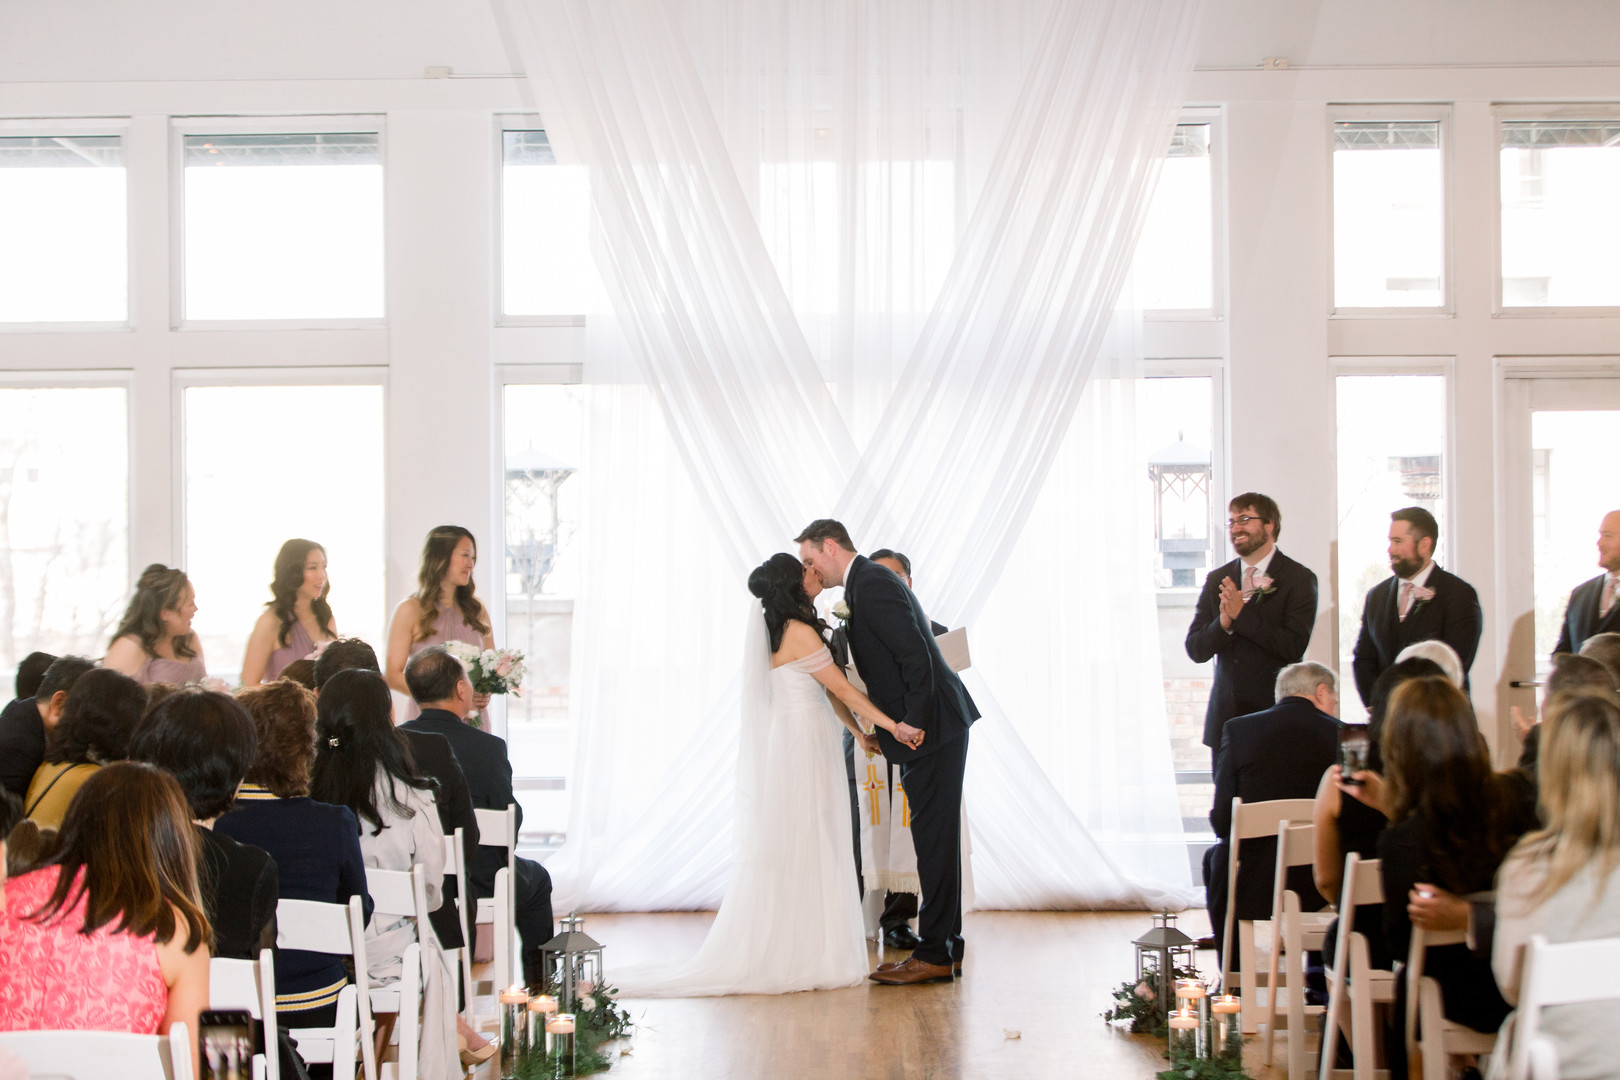 Wedding ceremony portrait: Spring wedding inspiration captured by Nicole Morisco Photography. Find more spring wedding ideas at CHItheeWED.com!